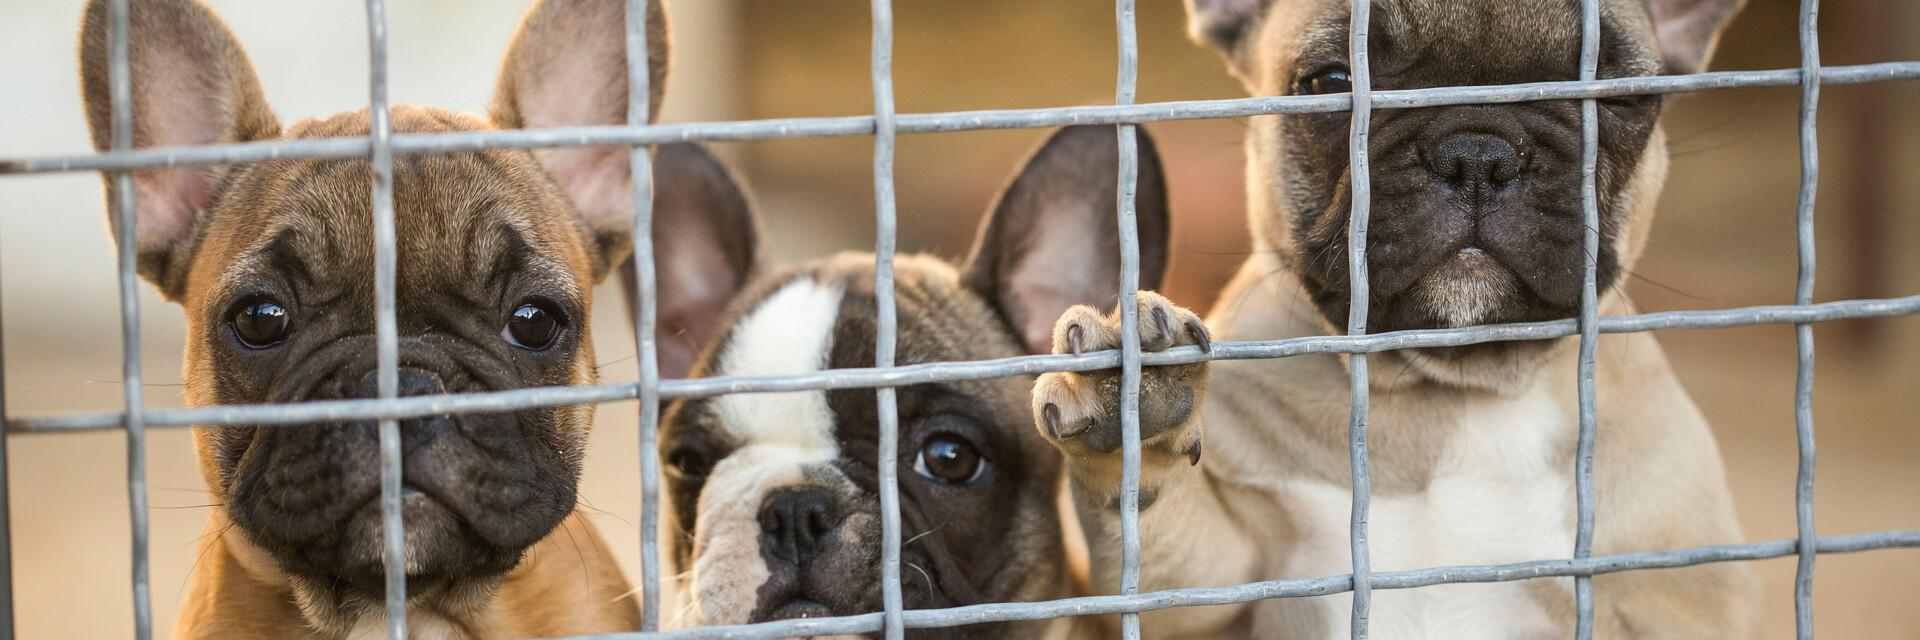 Pitiful puppies in cages